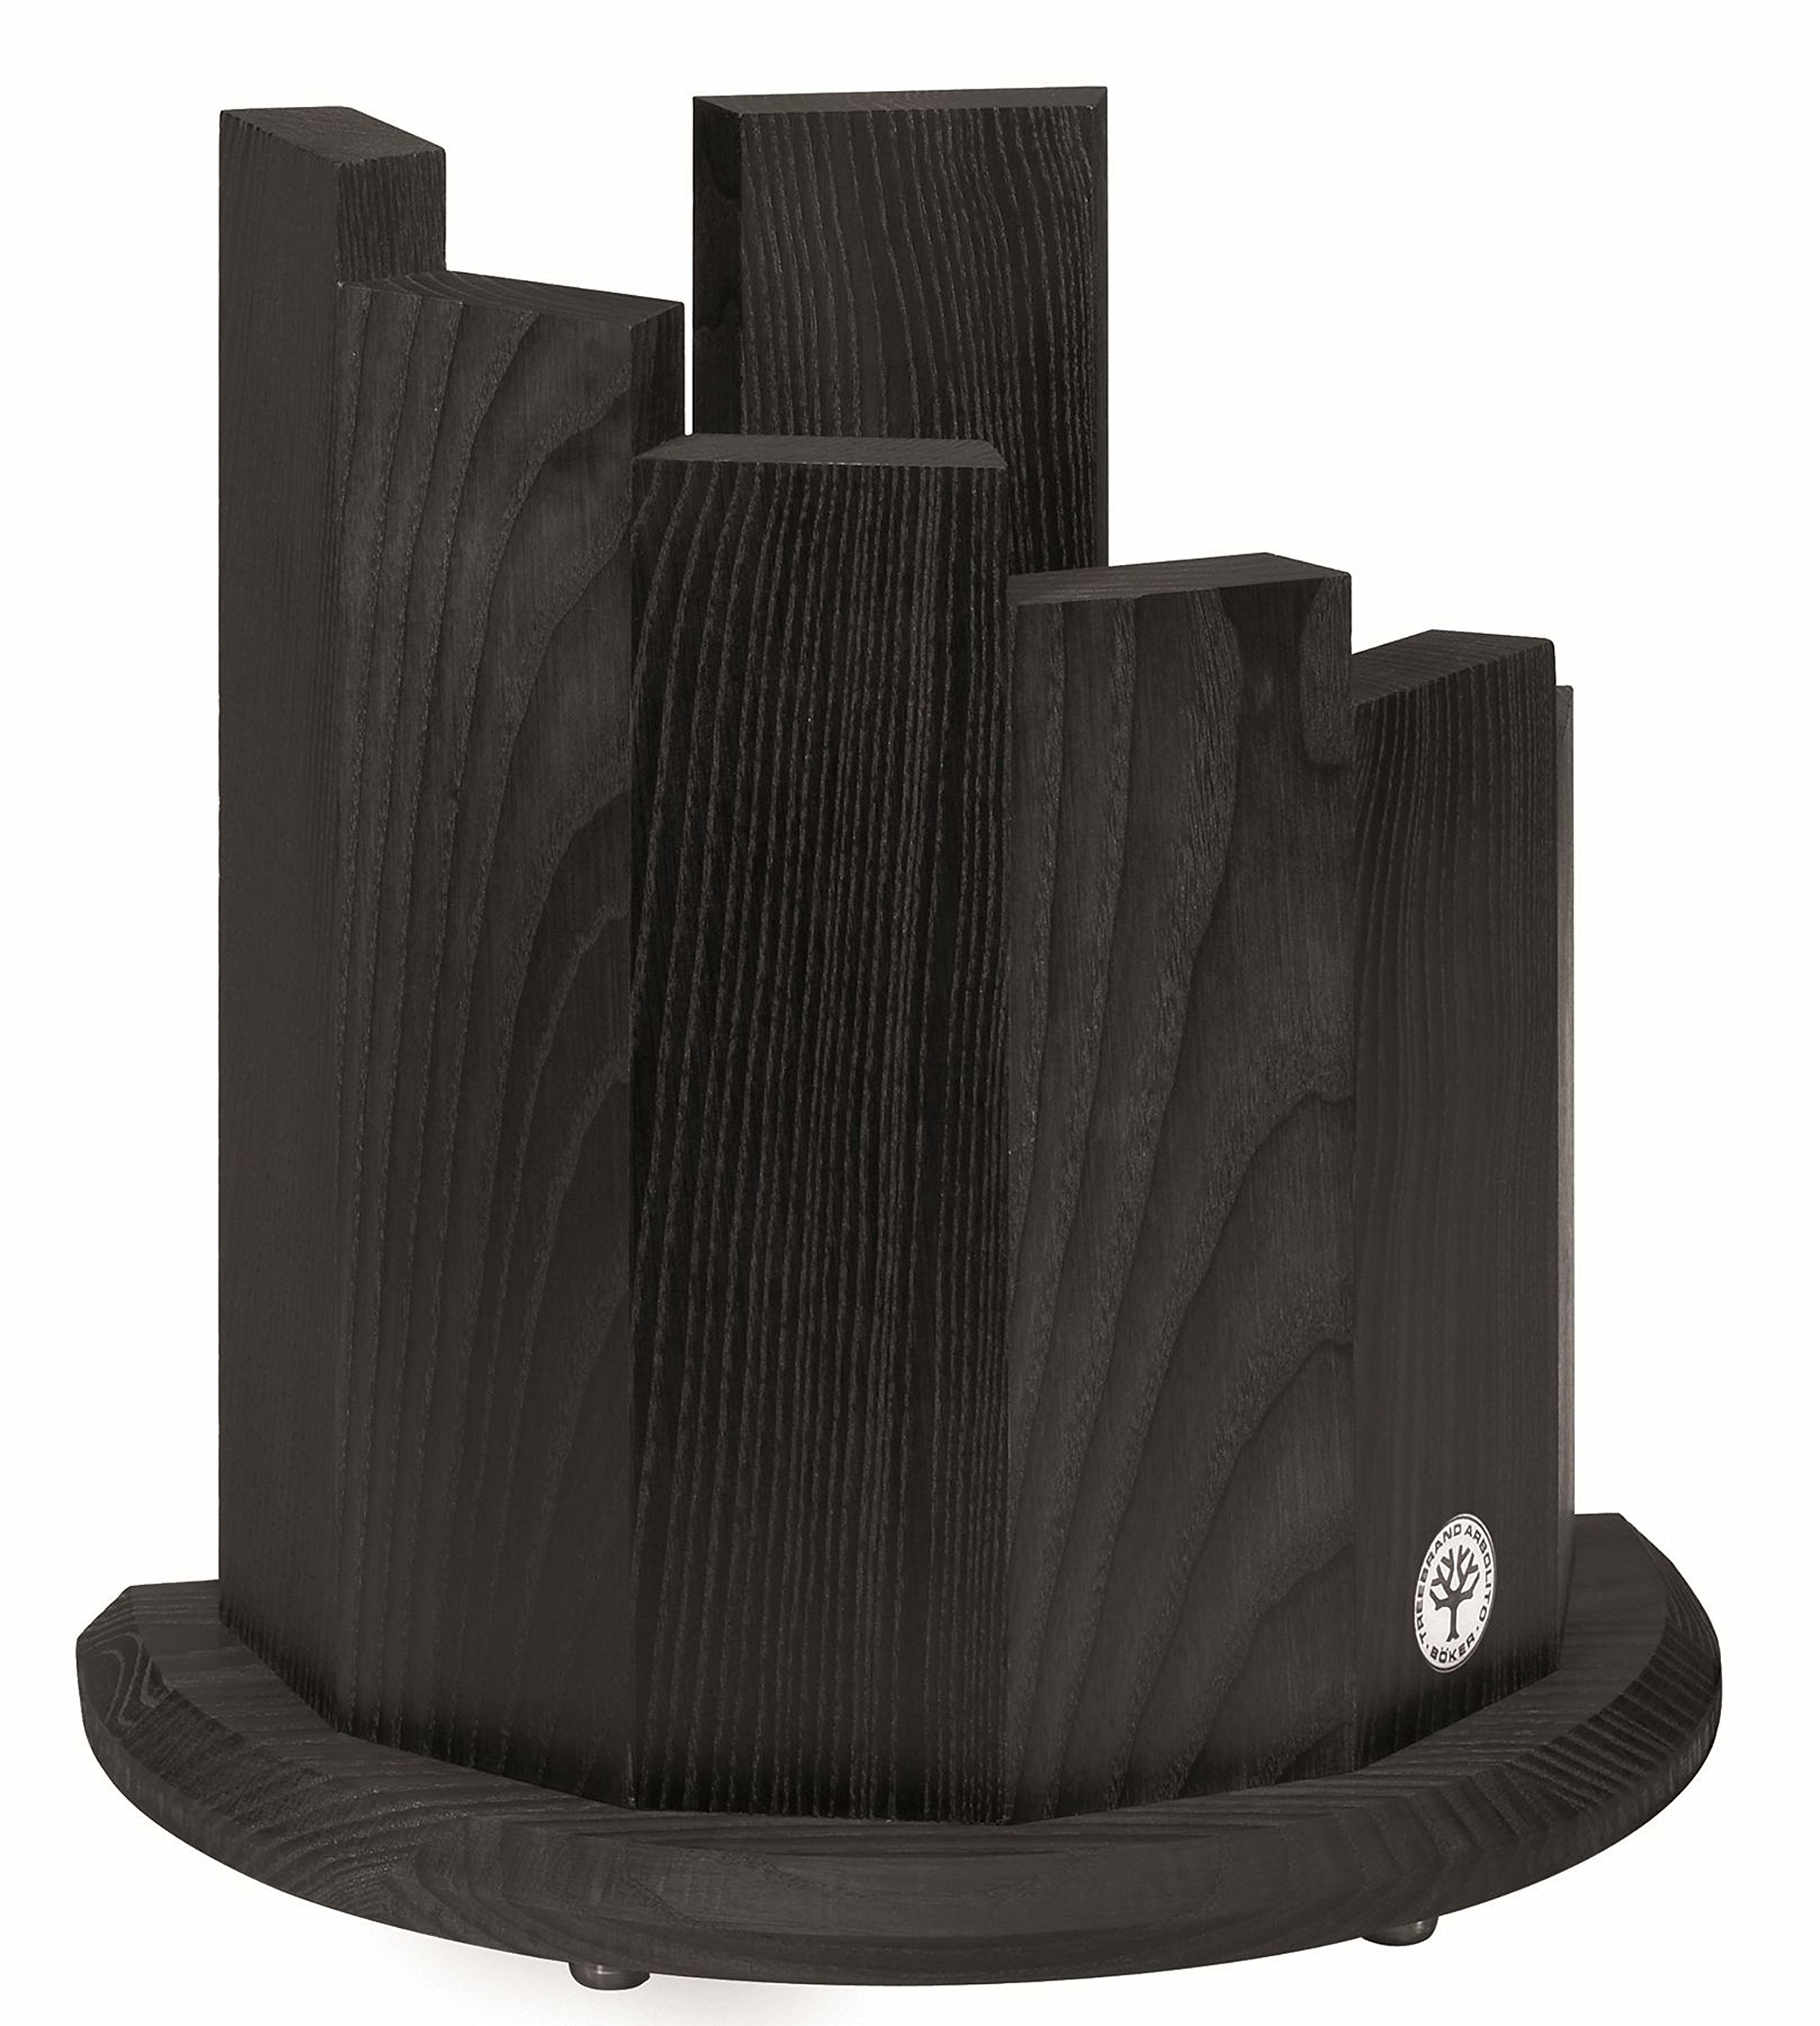 Boker 30400 Wood Magnetic Knife Block, Black